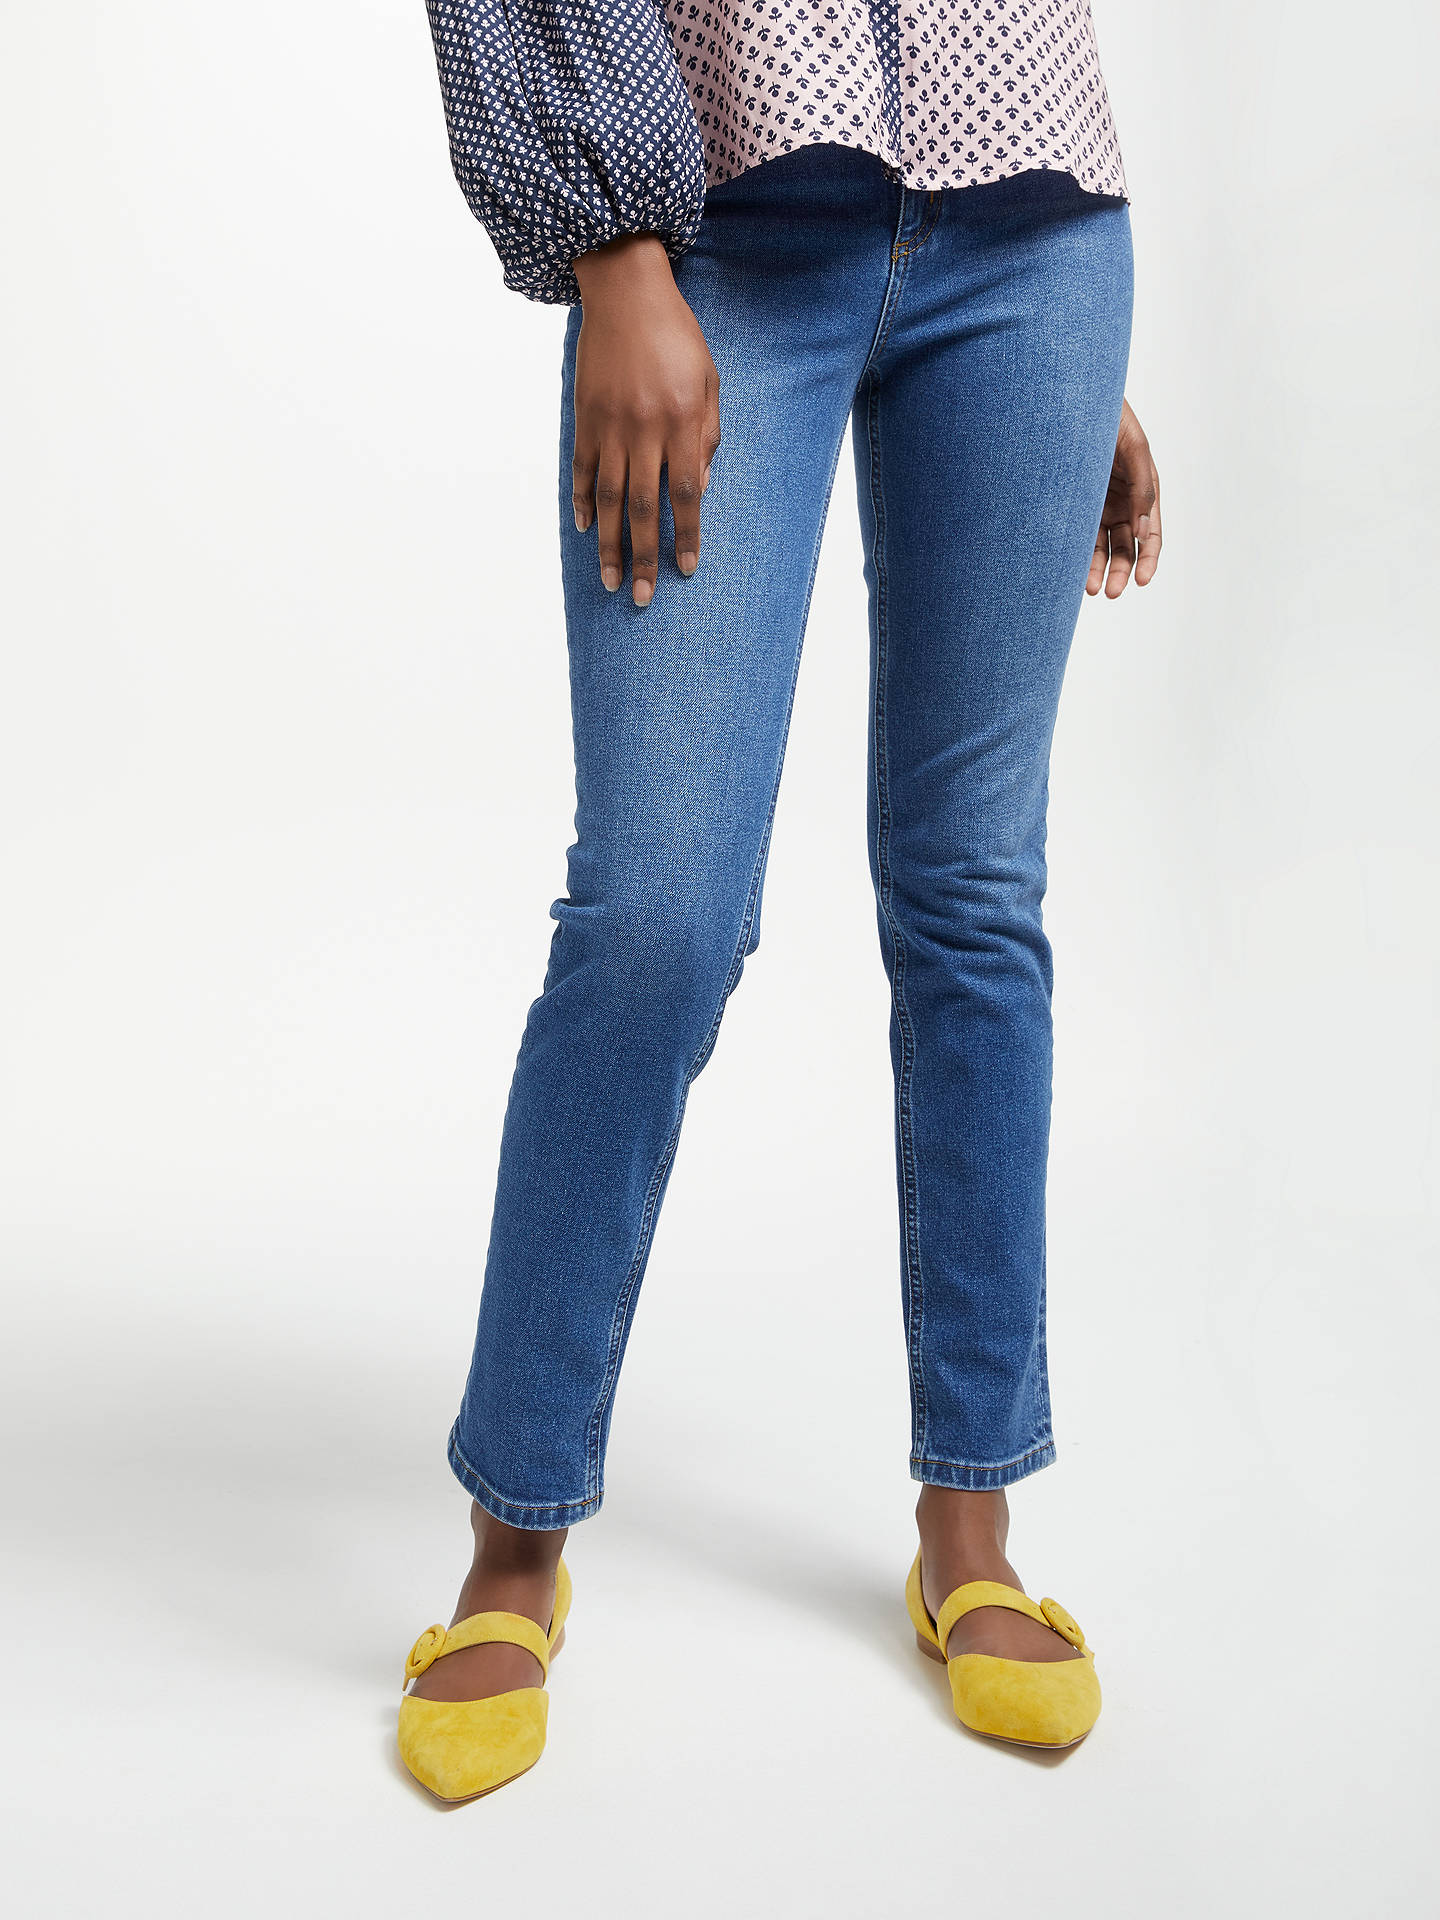 BuyBoden Cavendish Girlfriend Jeans, Blue Vintage, 10 Online at johnlewis.com